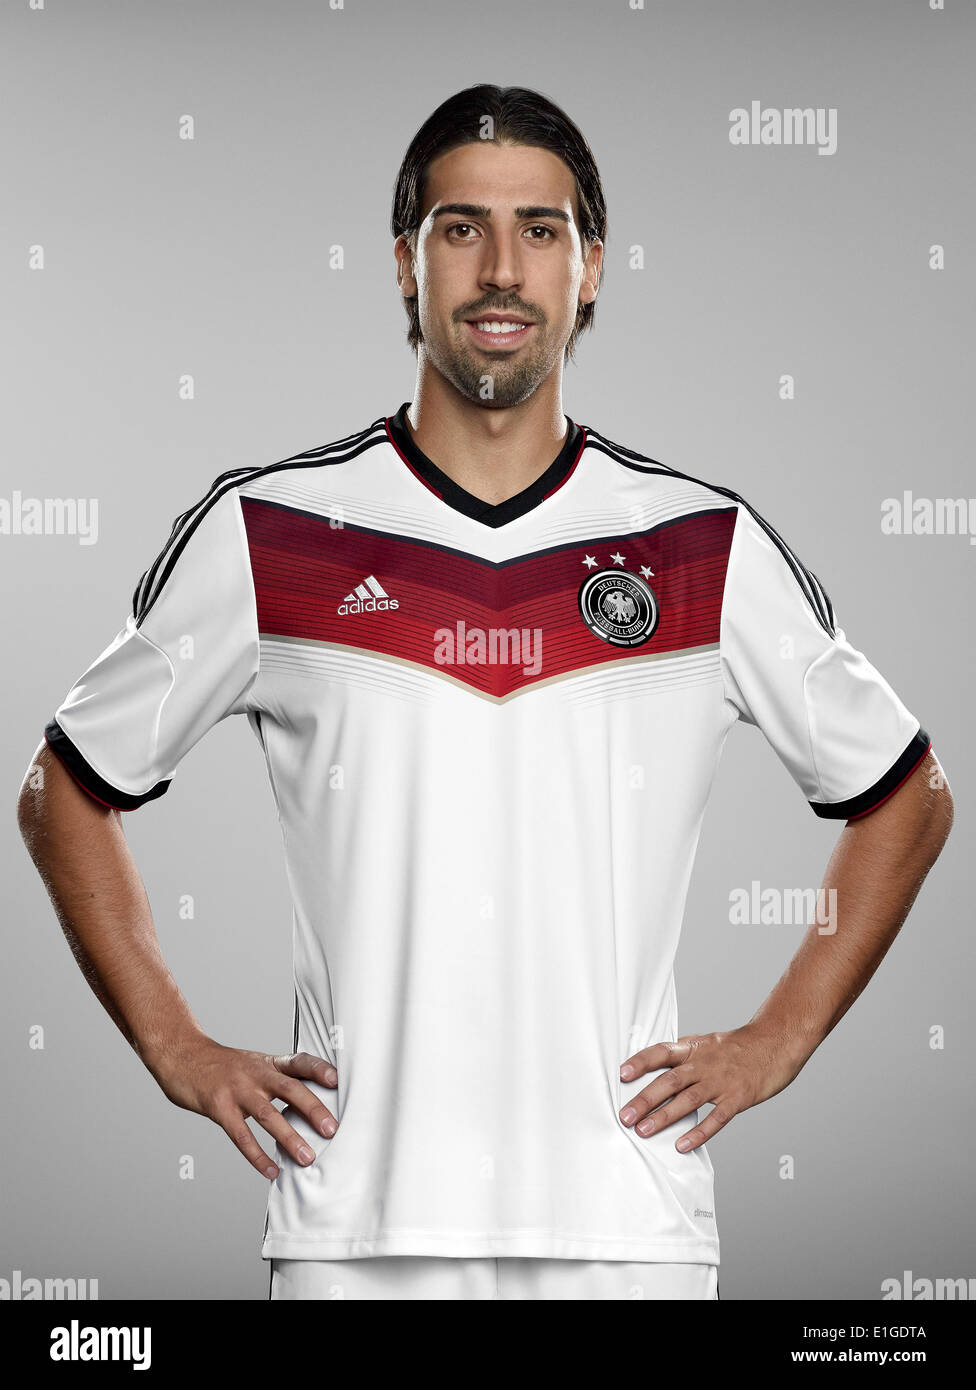 FIFA World Cup 2014 - photocall Team Germany, 24 May 2014 in Passeier, Italy: Sami Khedira. Photo credit: Bongarts/Getty Images/German Football Association/dpa (editorial use only) - Stock Image